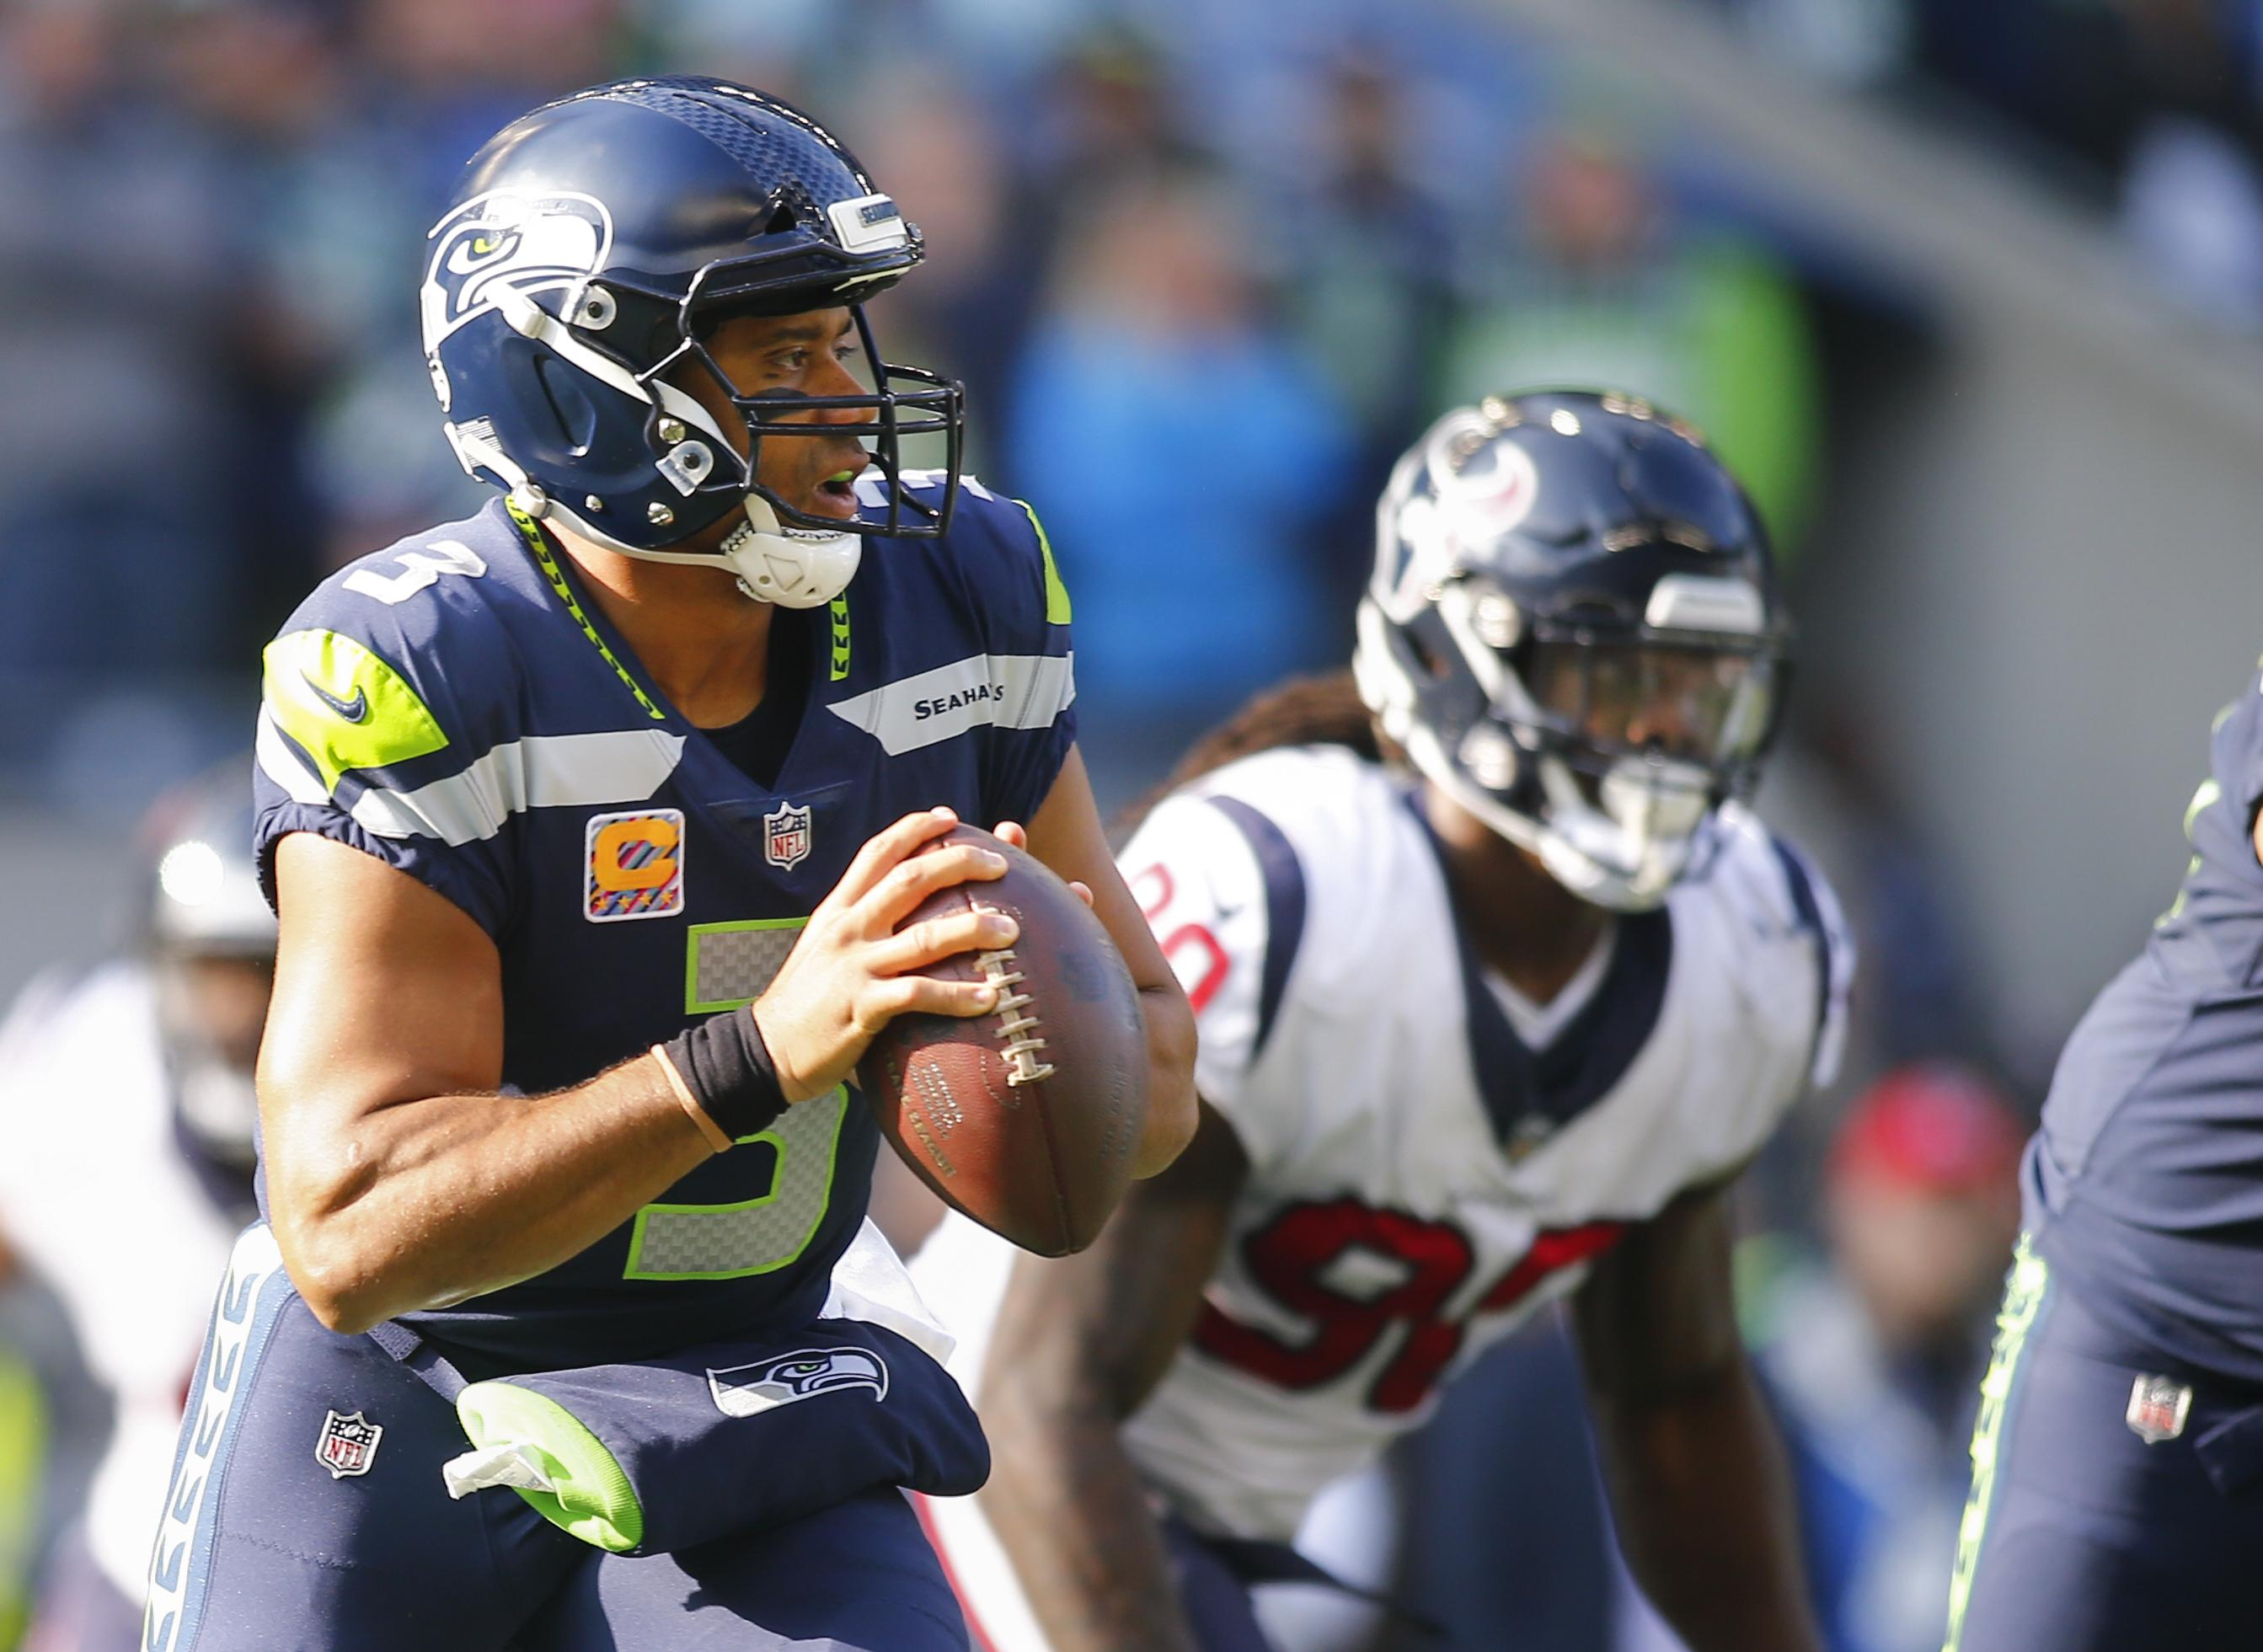 Seattle Seahawks QB Russell Wilson reworked contract to help sign Duane Brown